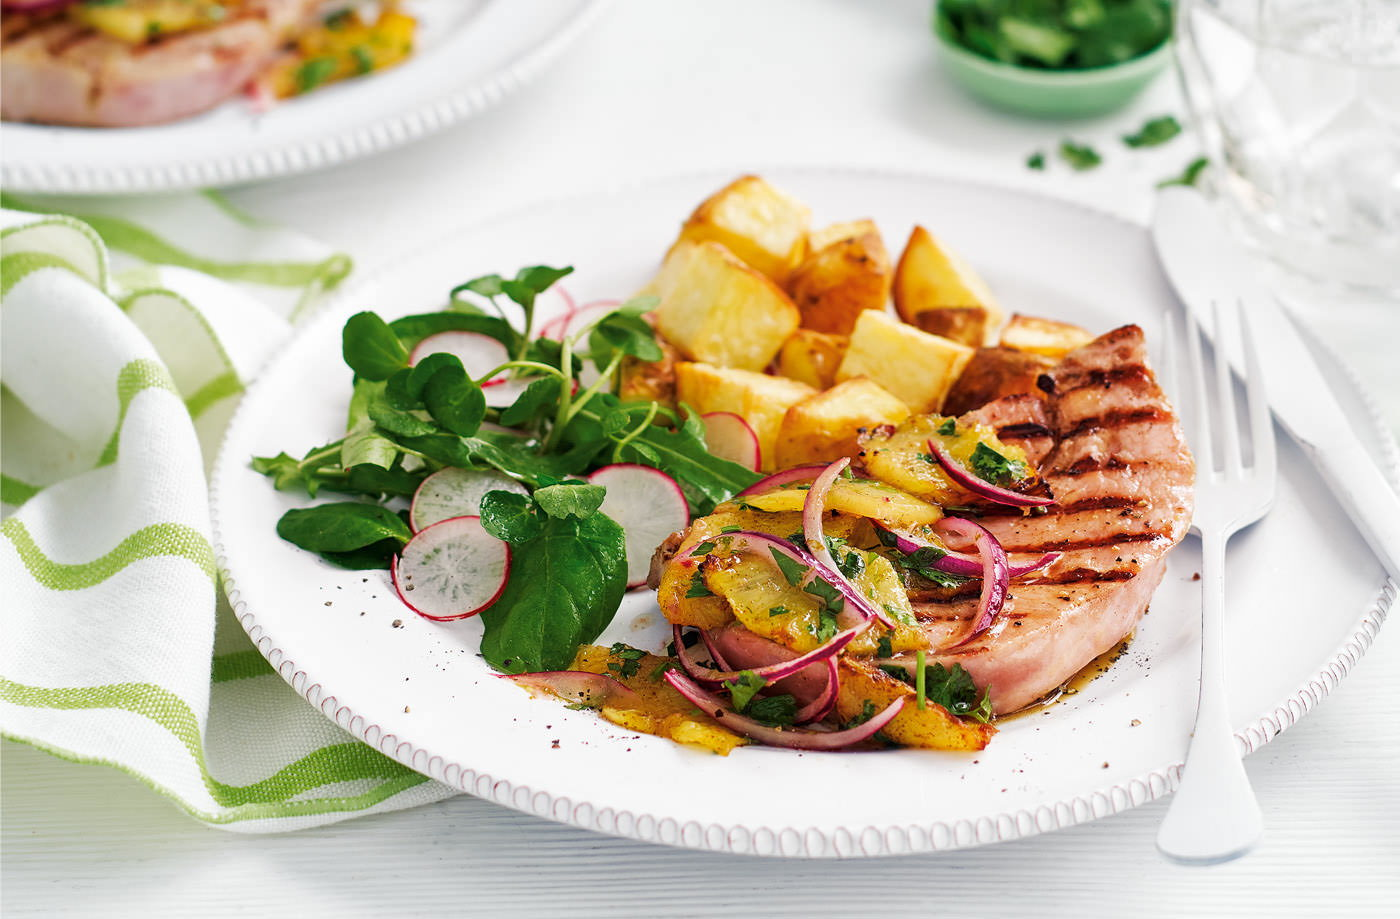 Griddled gammon steaks with pineapple salsa recipe